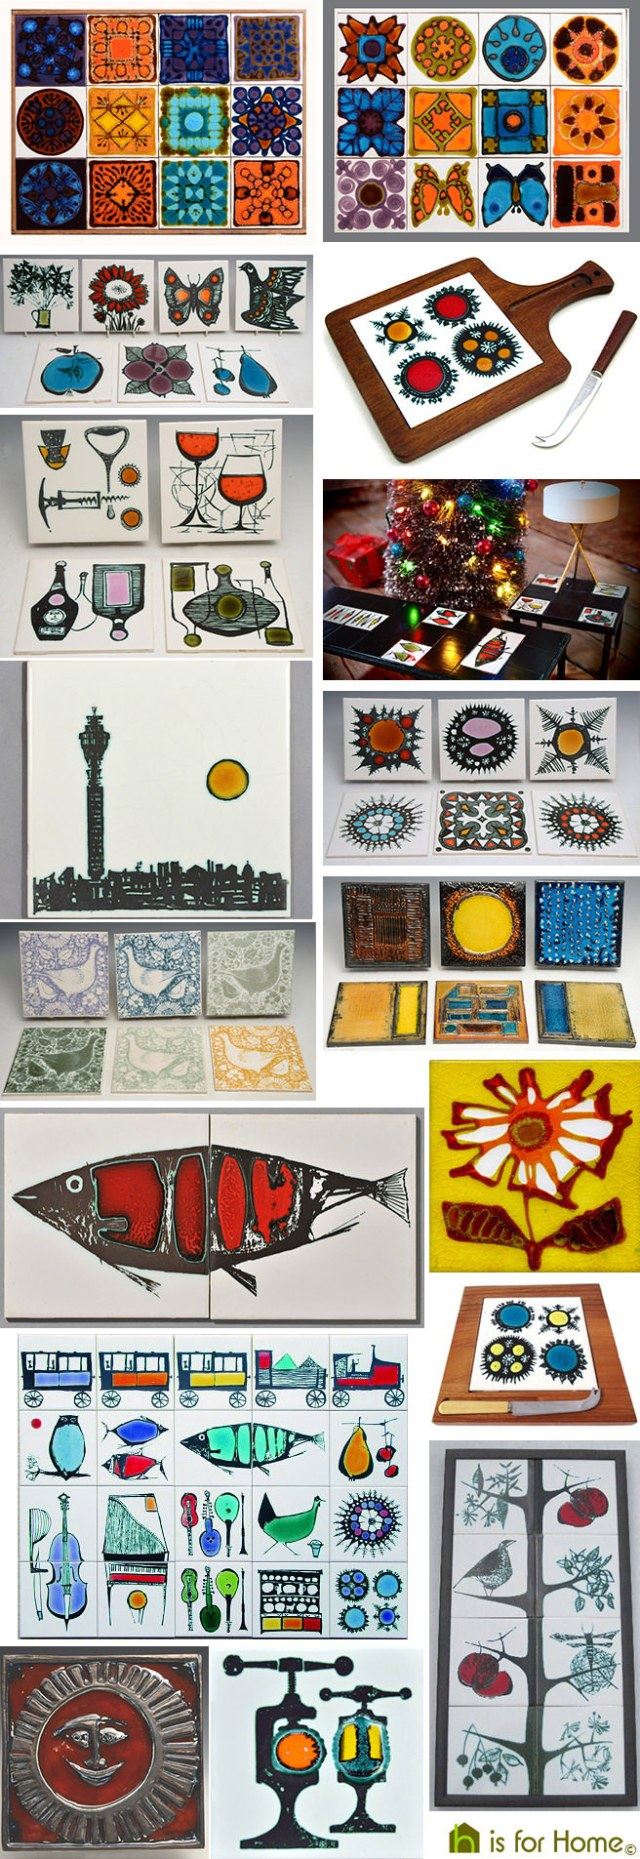 Collage of Ann Wynn-Reeves ceramic works | H is for Home